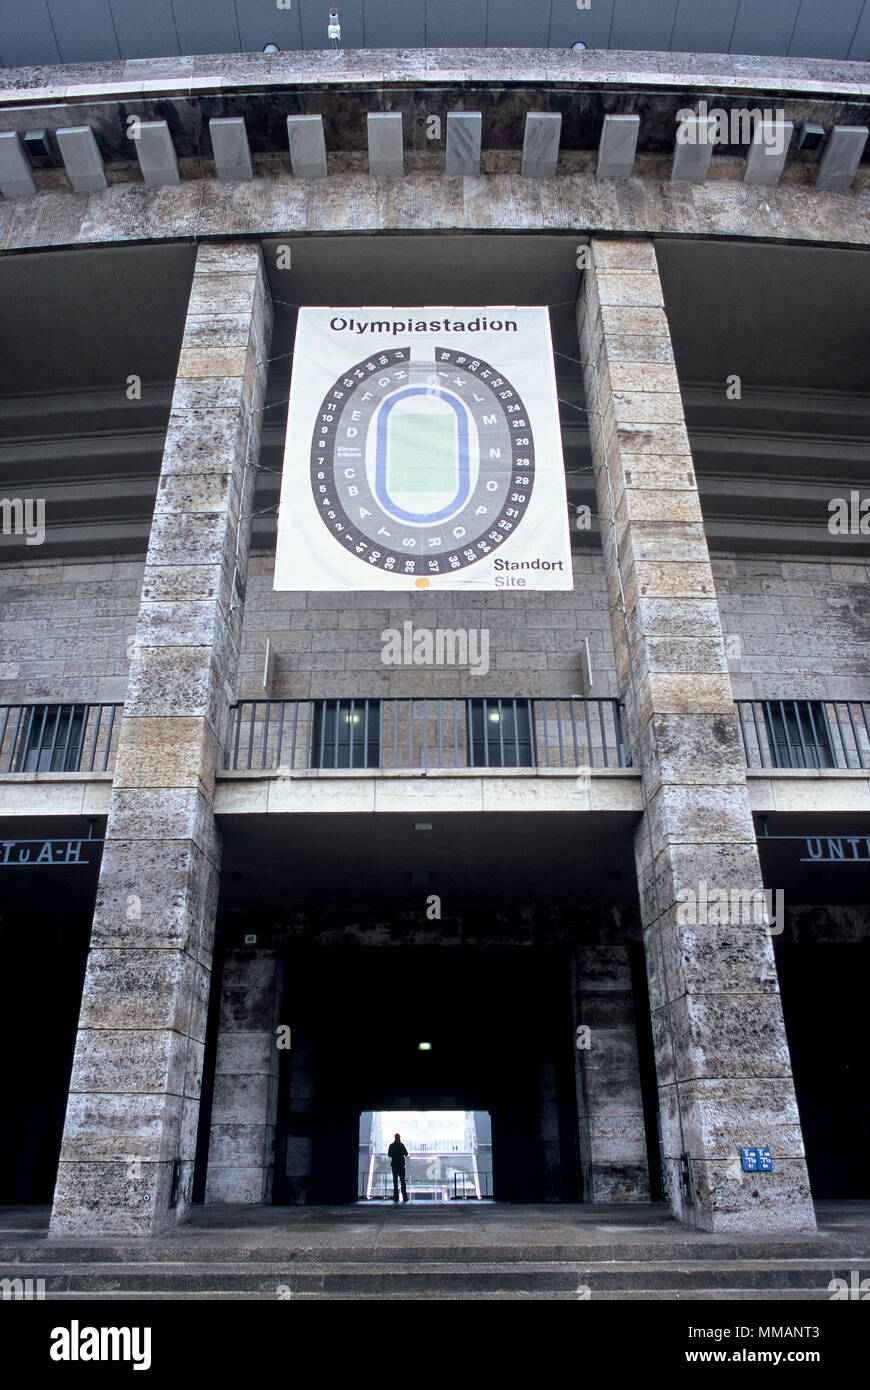 Entrance of the Olympic Stadium (Olympiastadion), built in 1936 for the Olympic Games. Berlin, Germany. - Stock Image